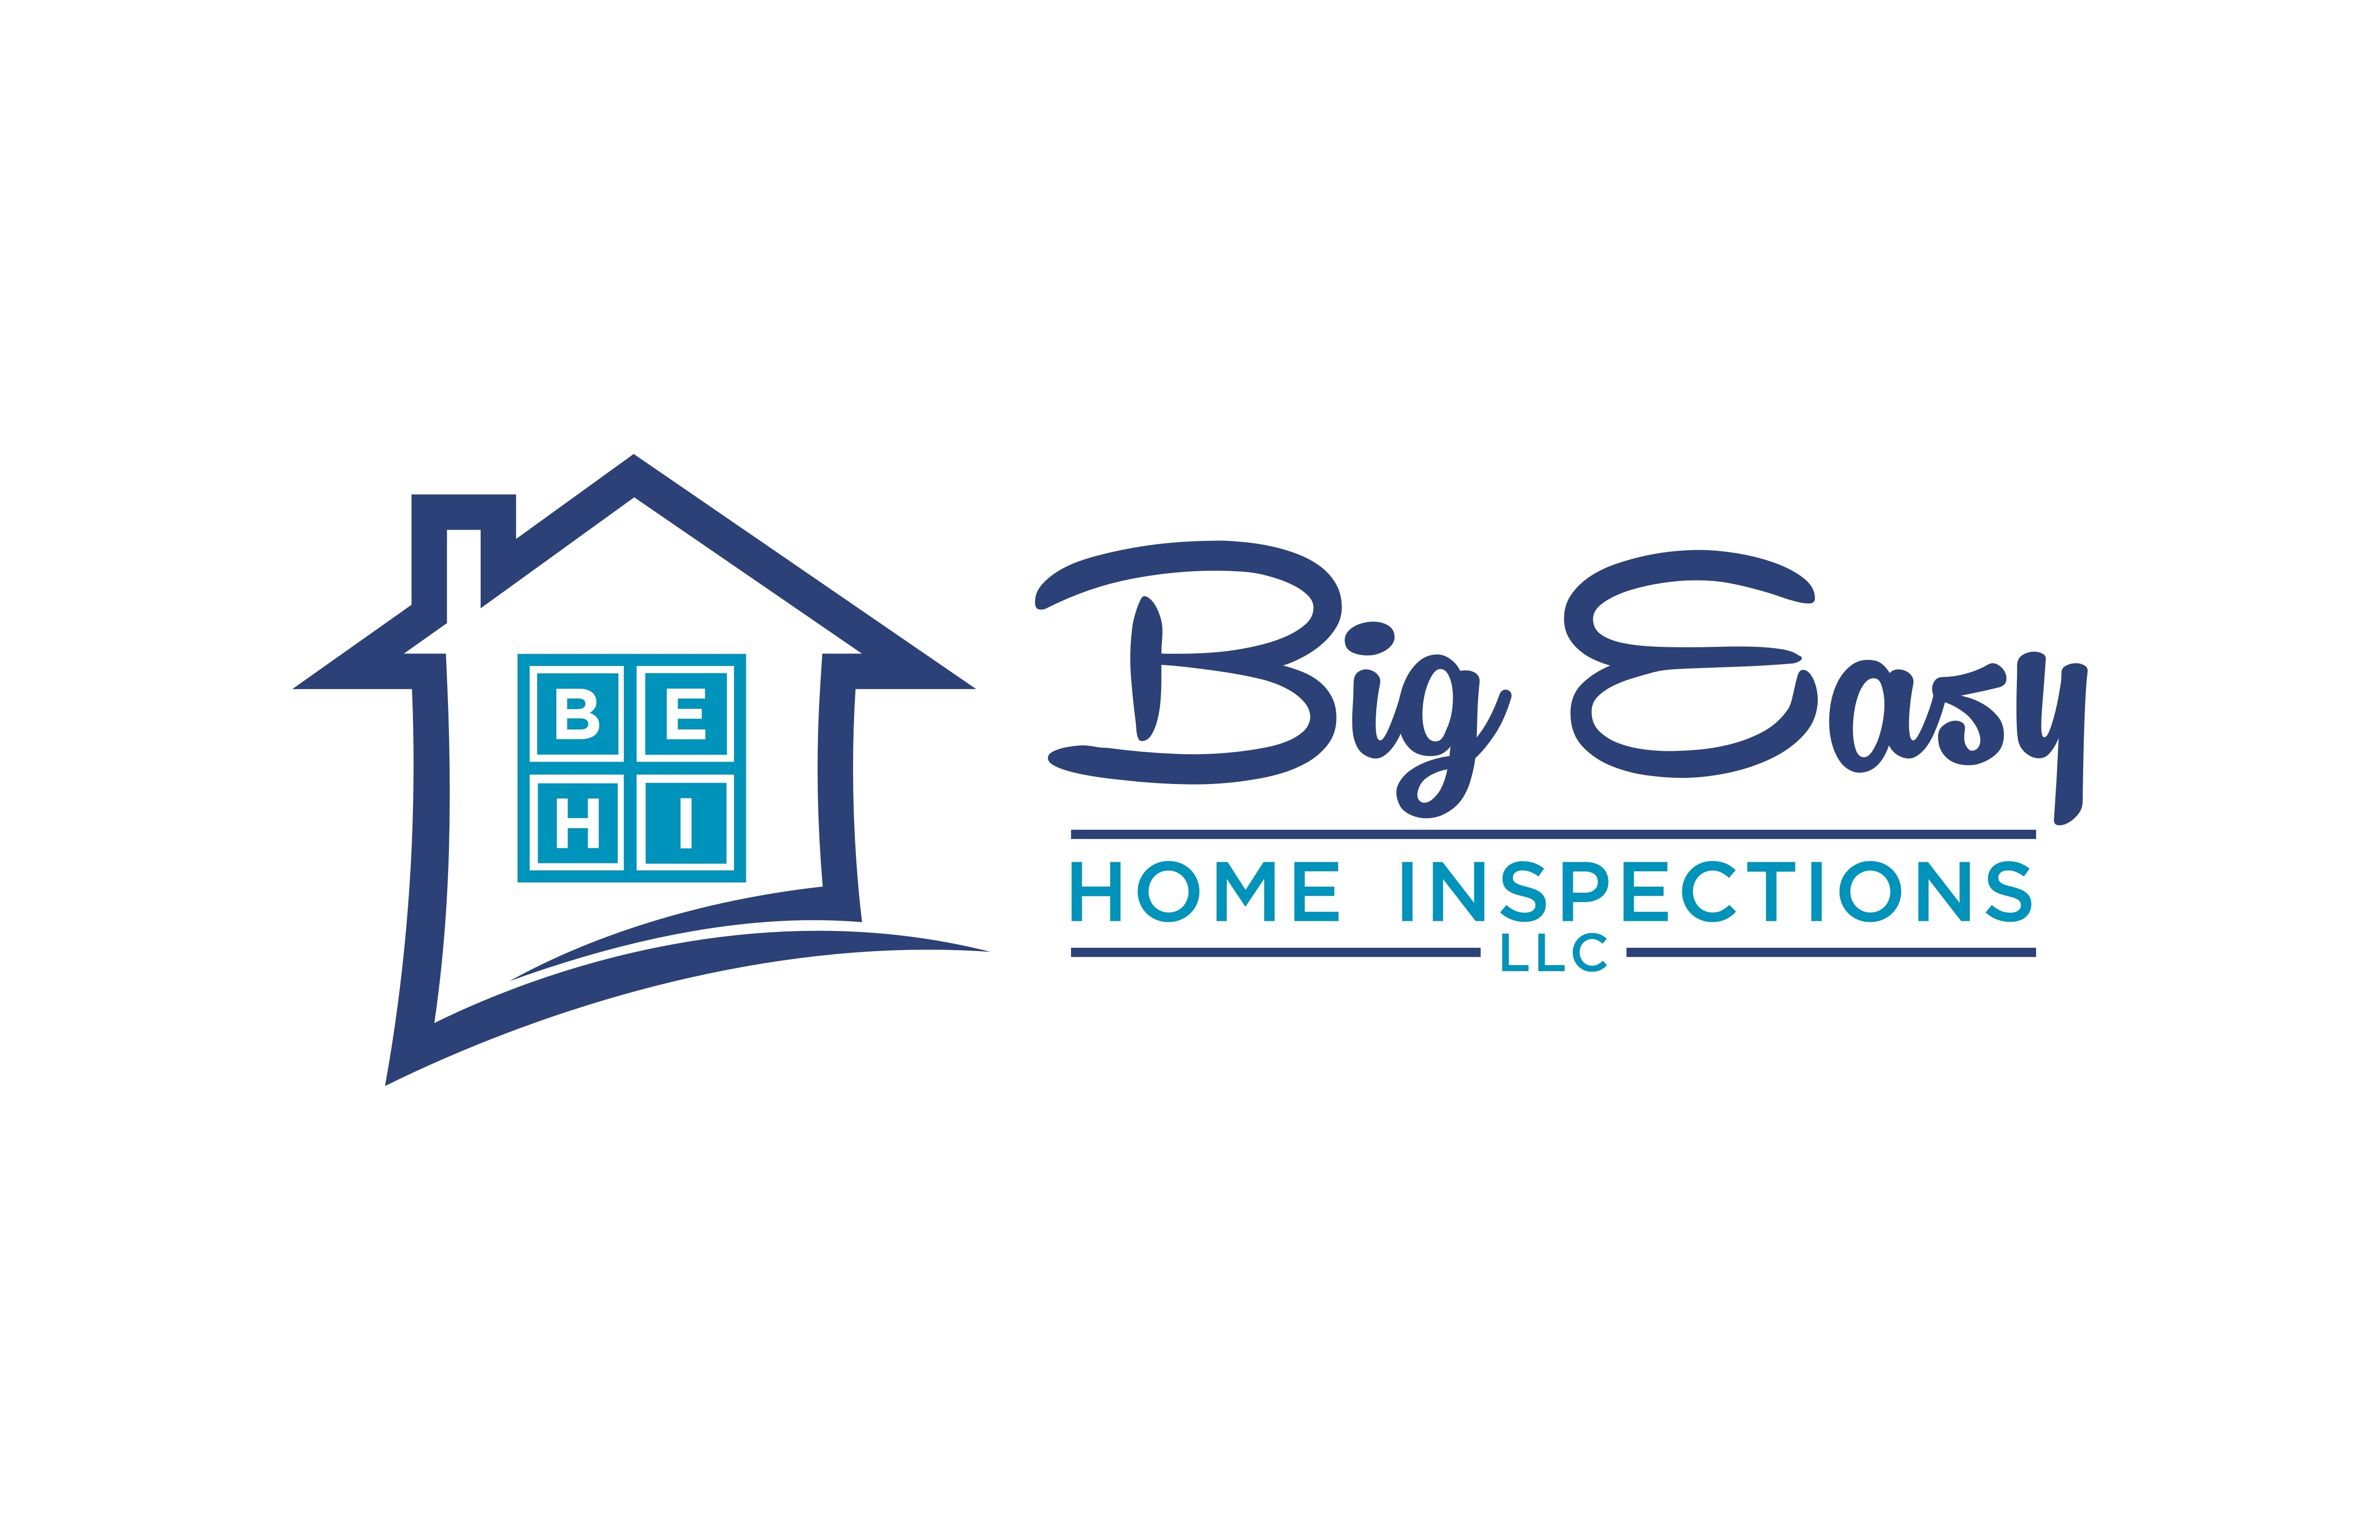 Big easy home inspections llc